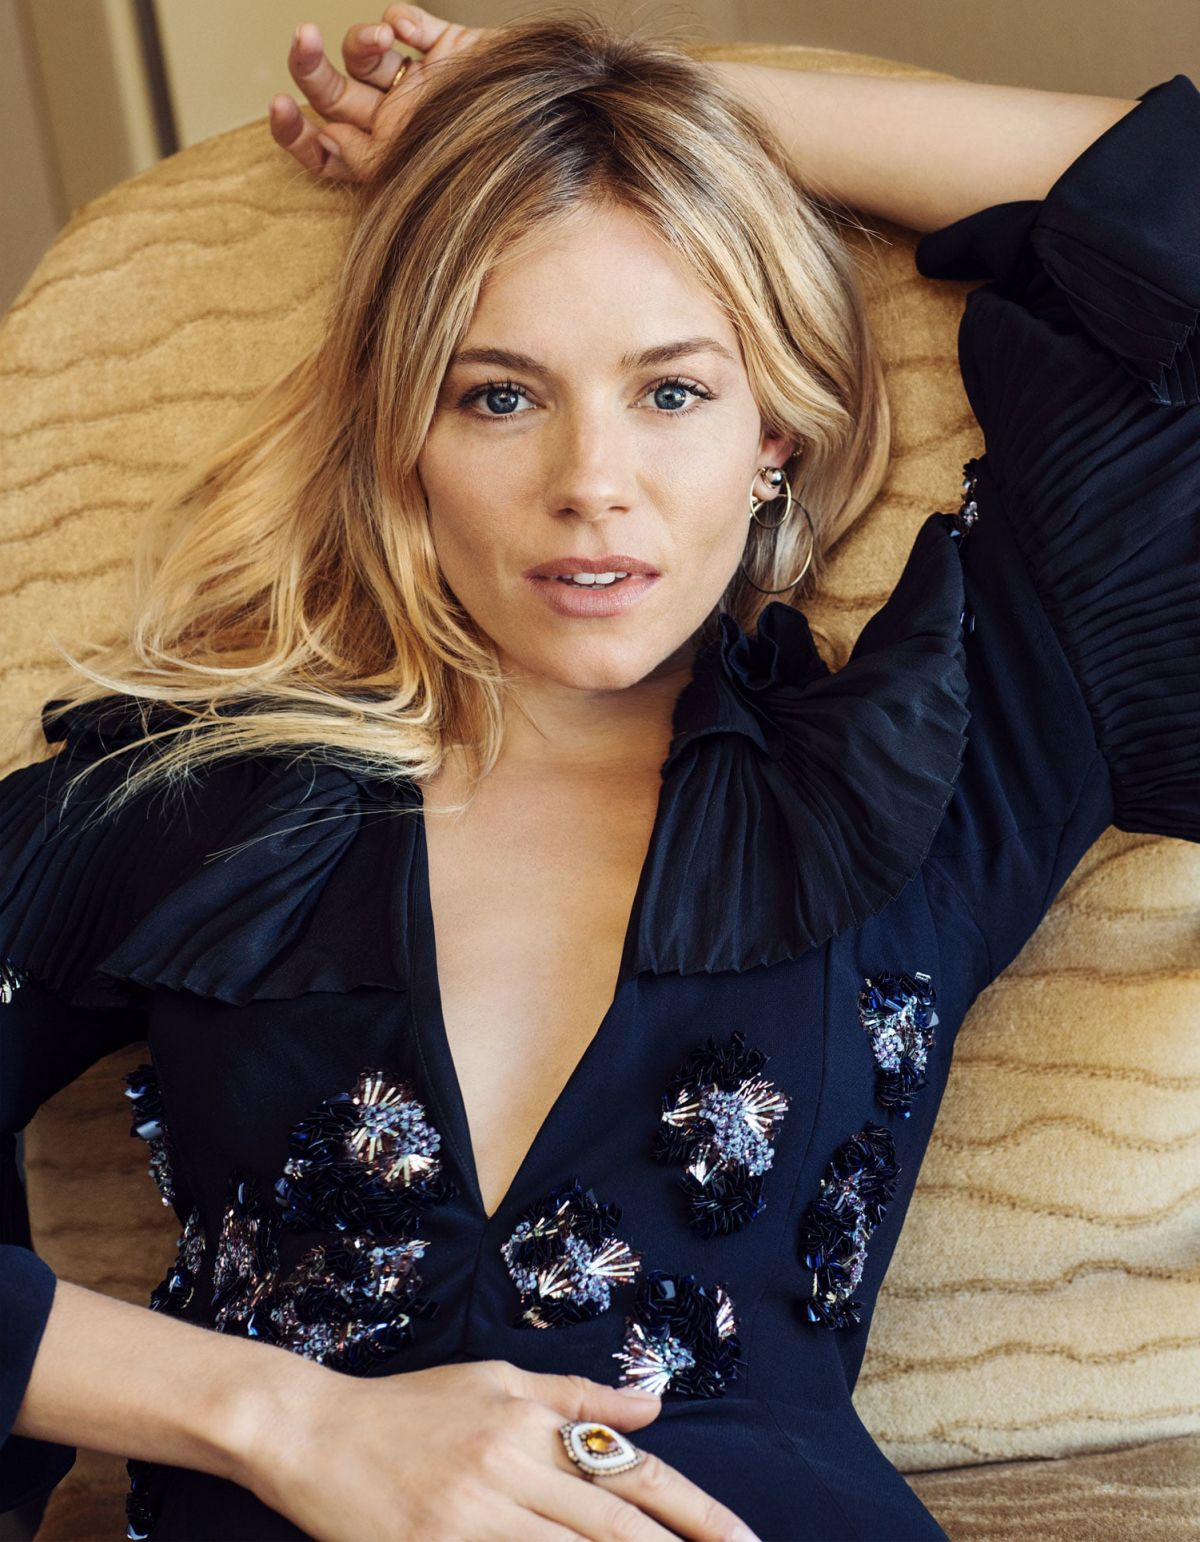 SIENNA MILLER for Telegraph Magazine, December 2016